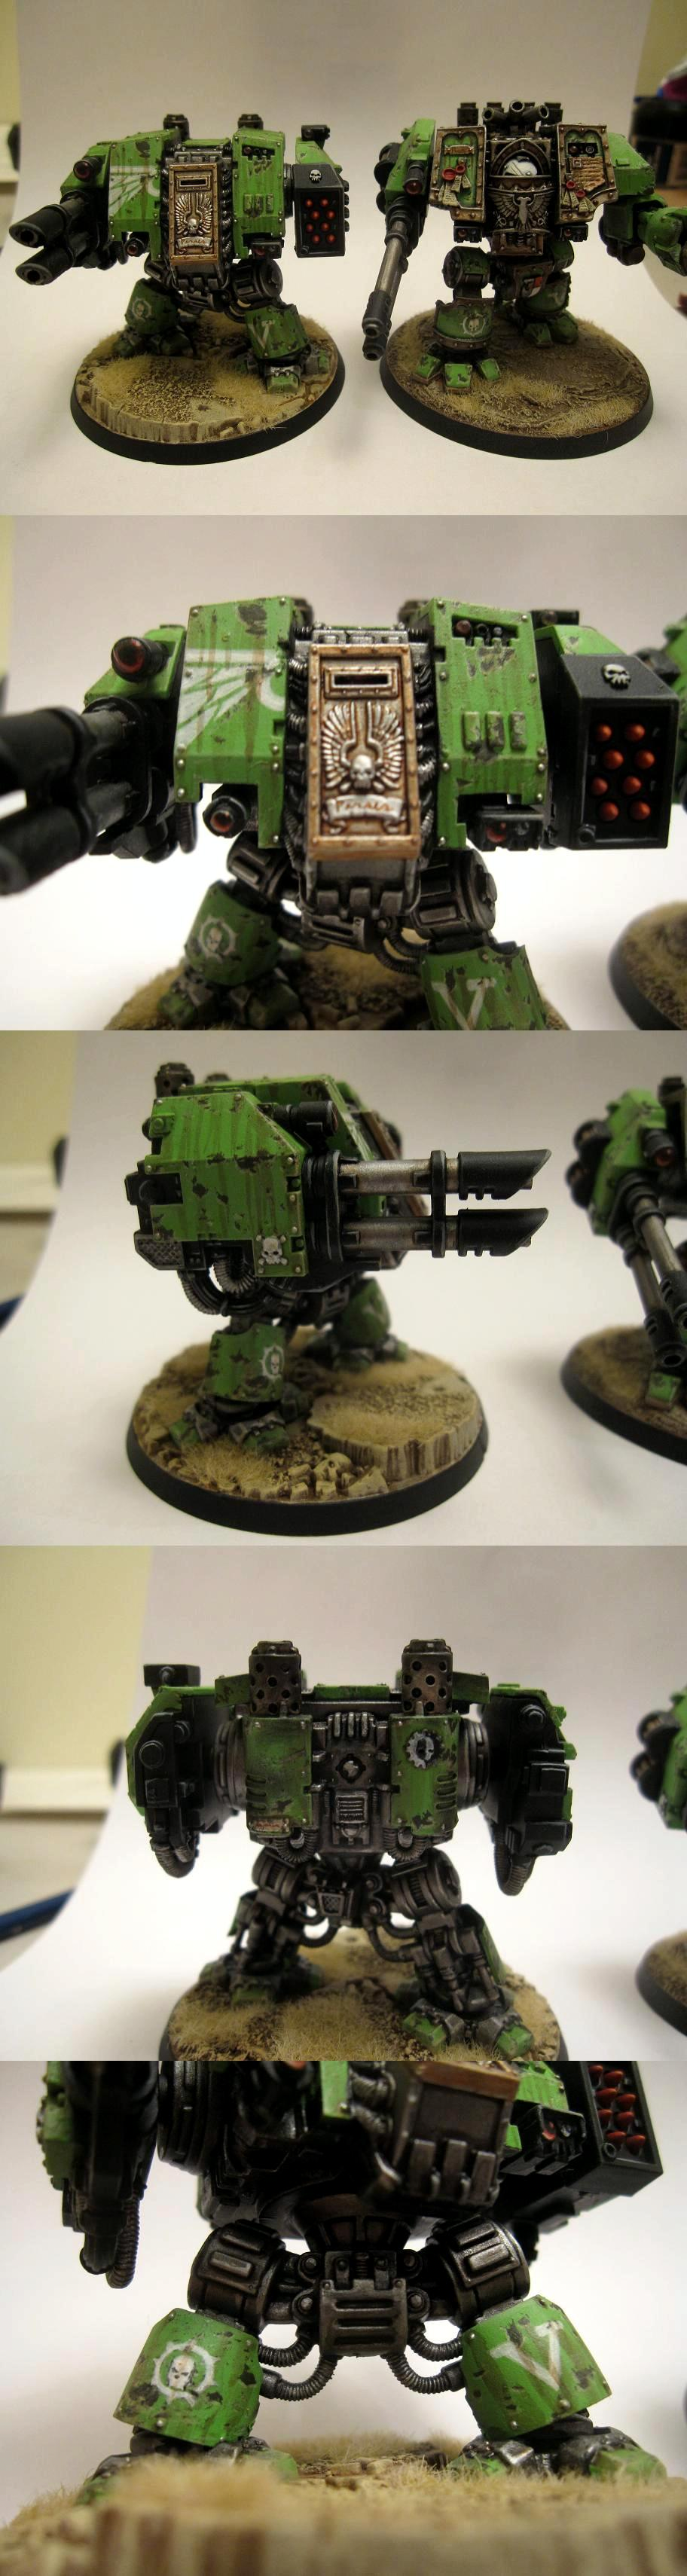 Badab War, Dreadnought, Sons Of Medusa, Space Marines, Warhammer 40,000